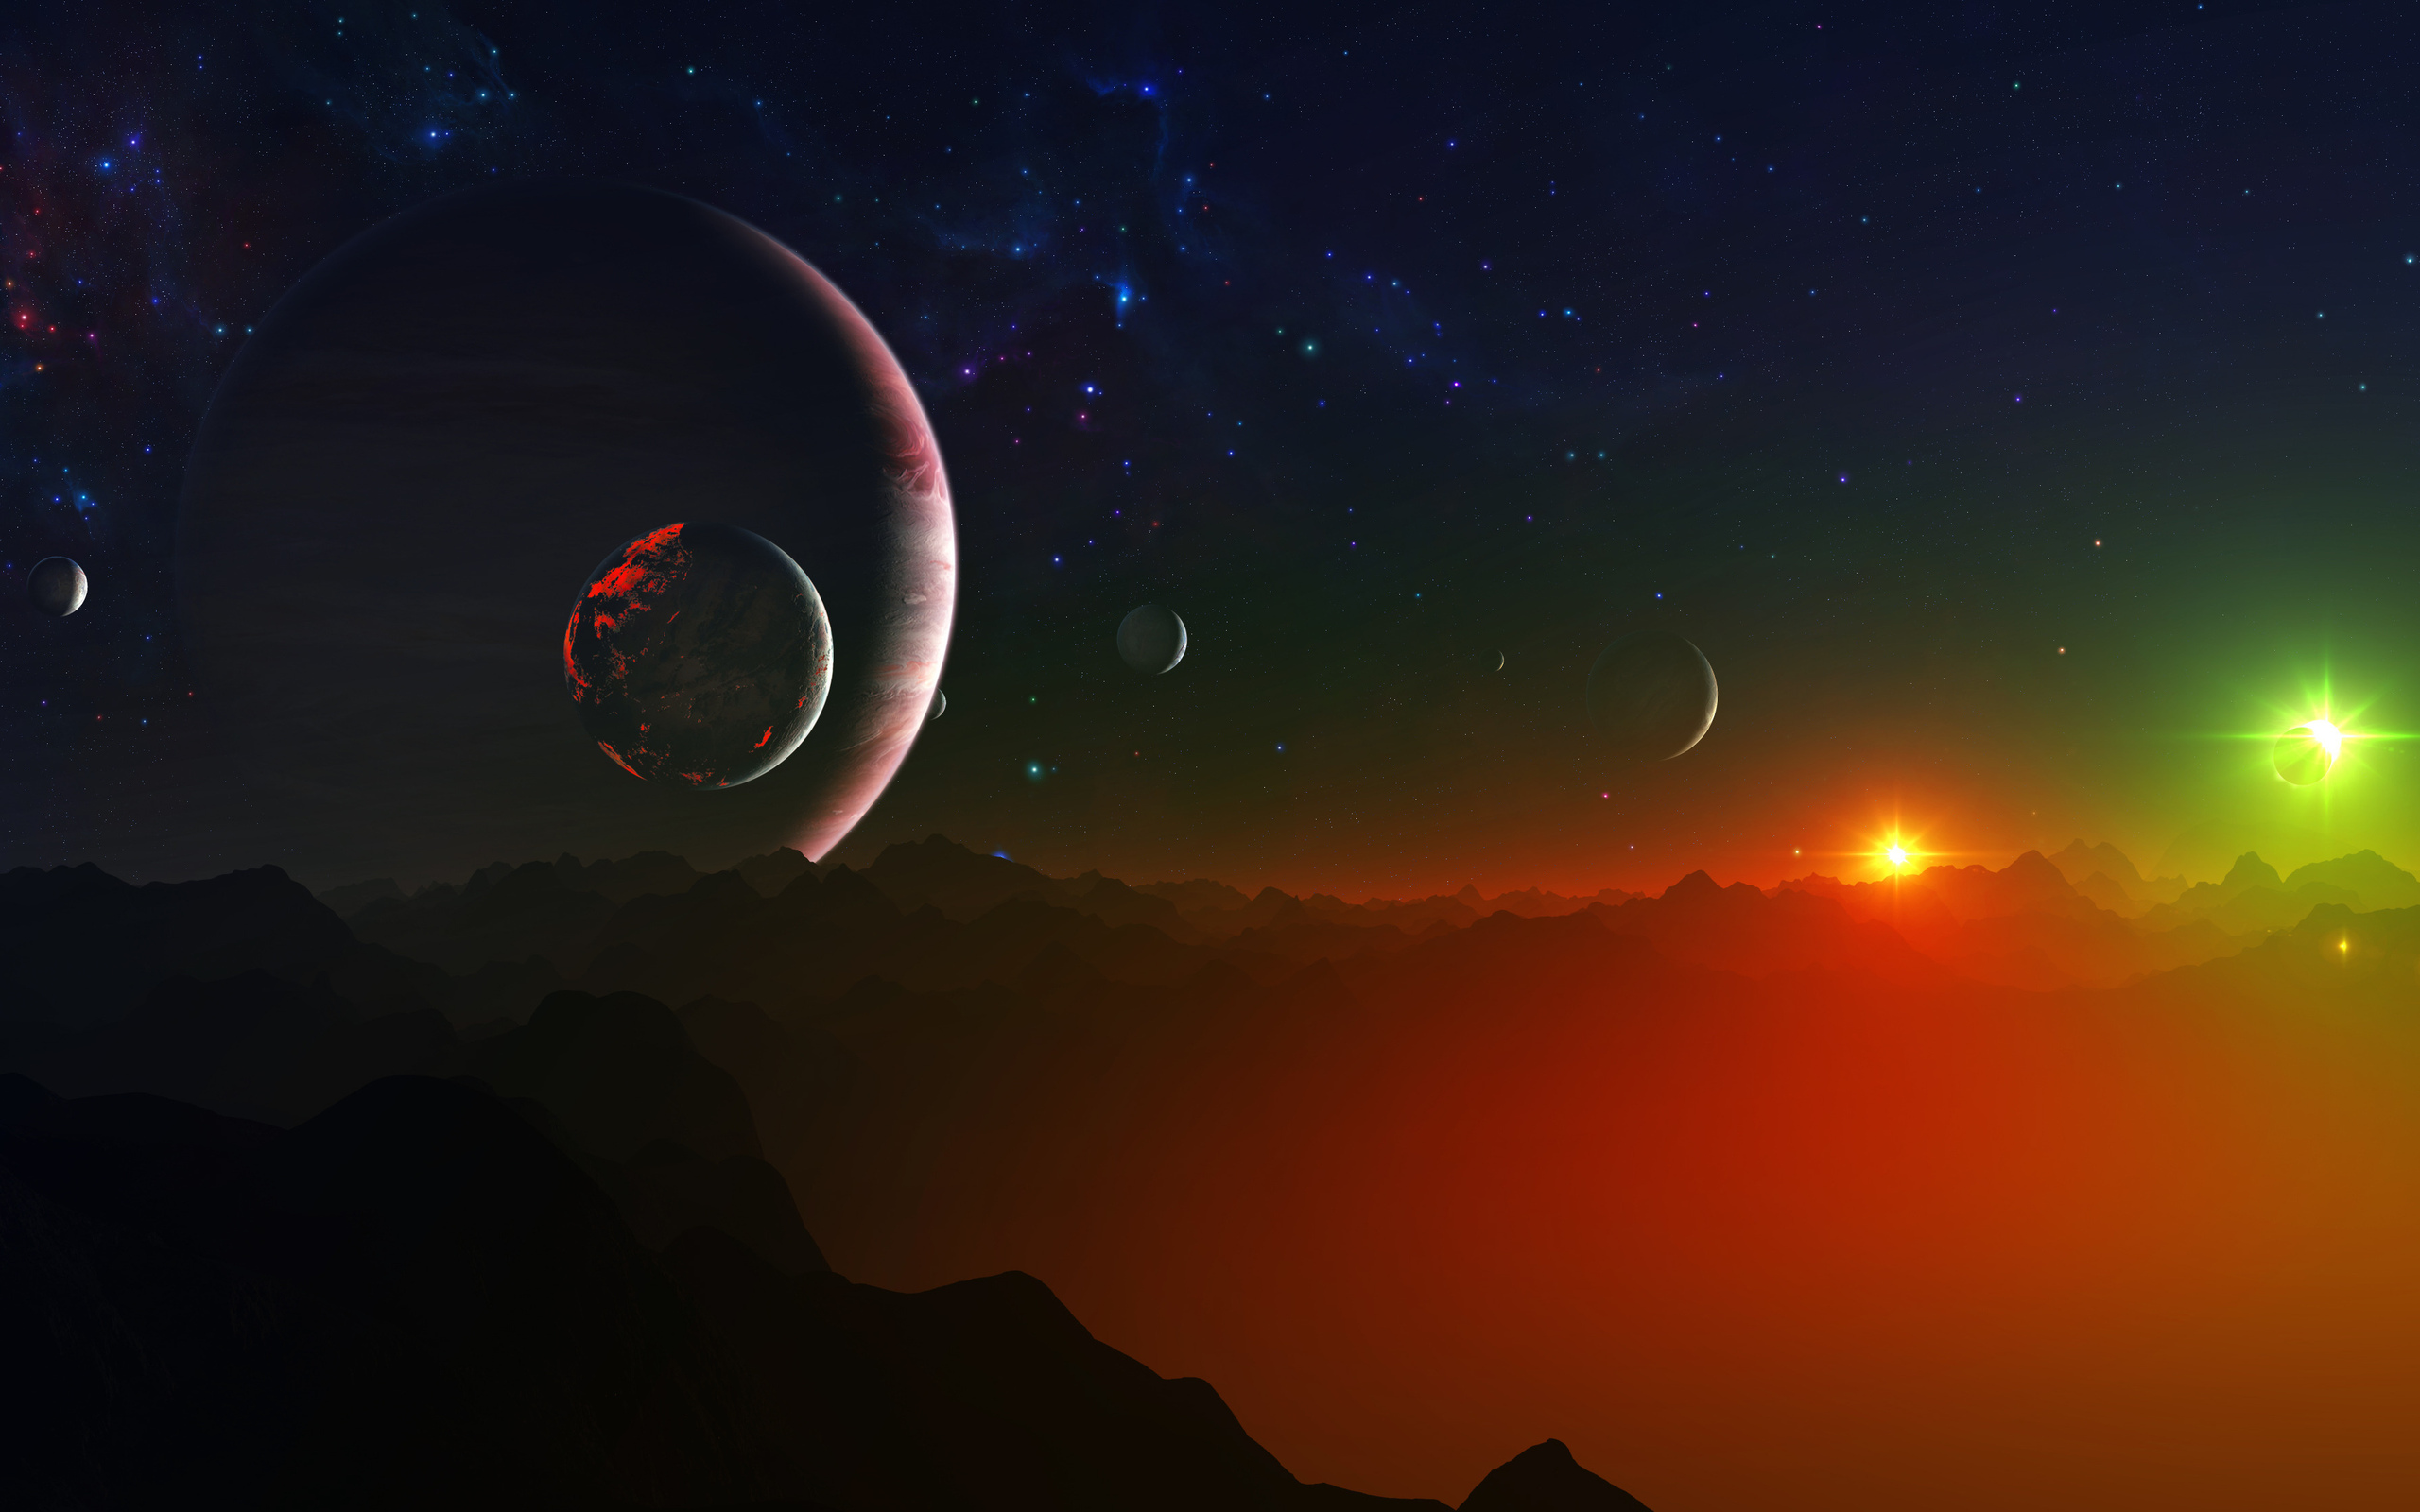 exoplanet backgrounds free - HD 2560×1600